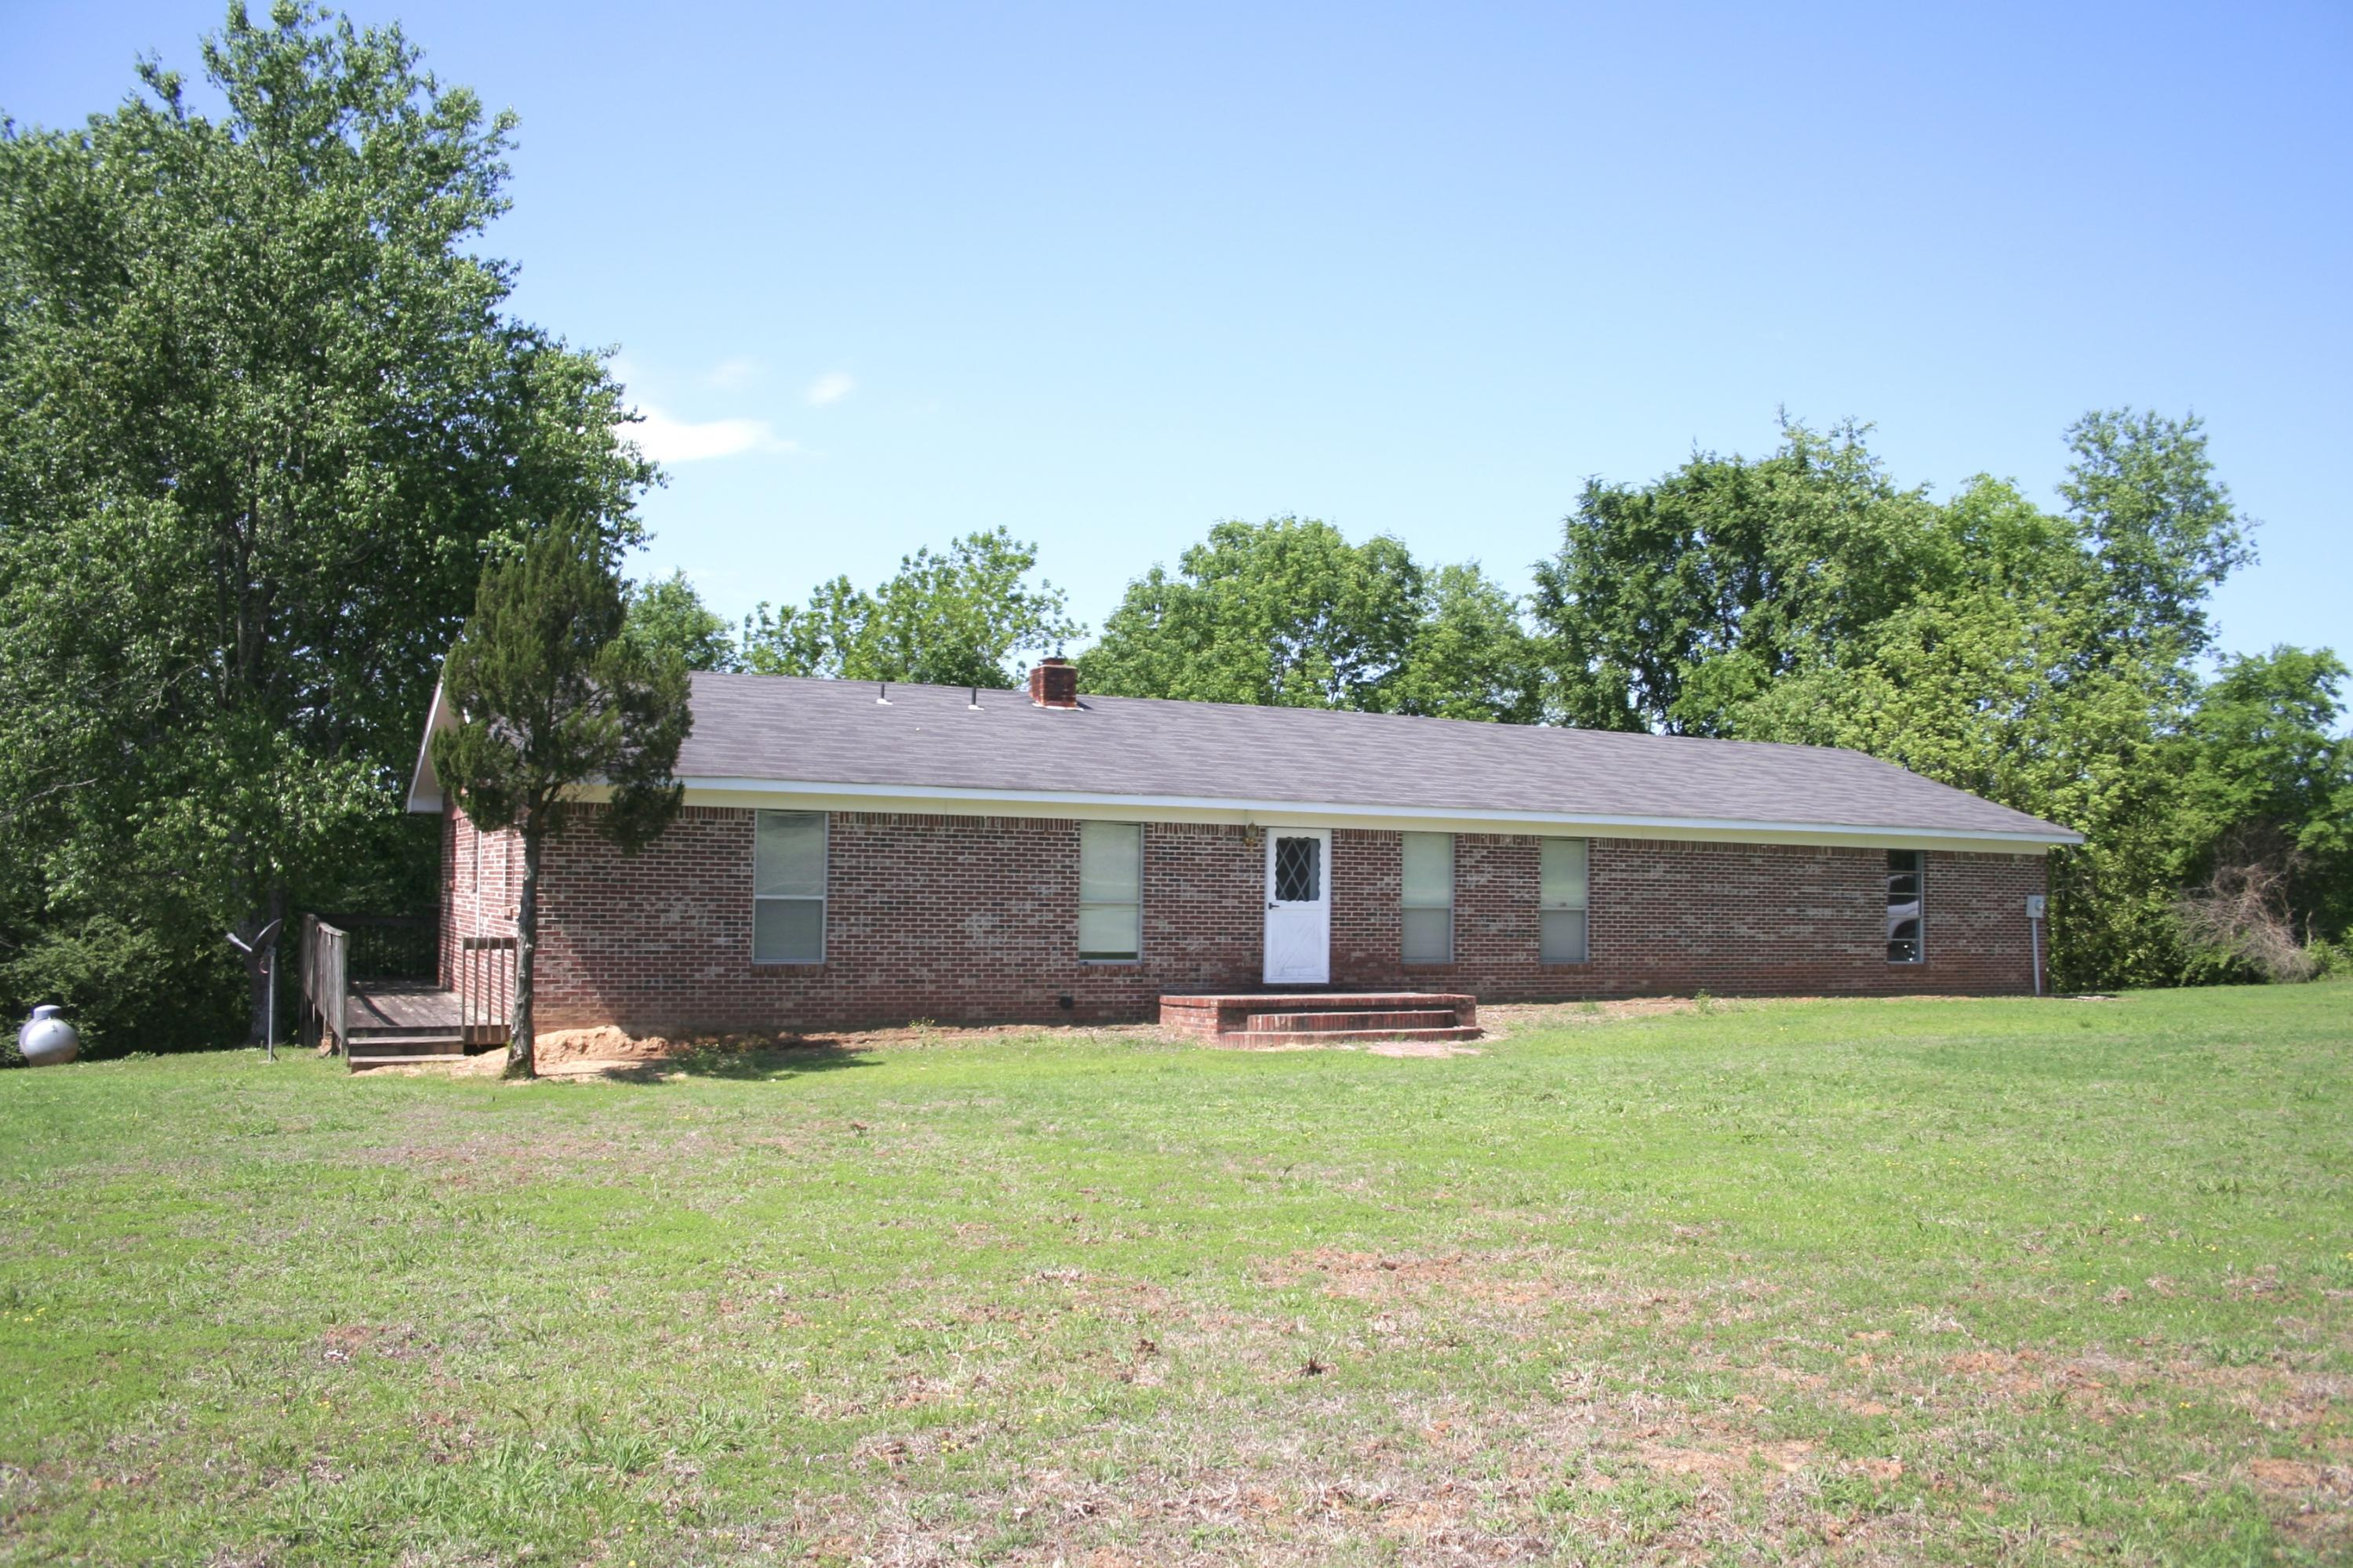 Main photo 1 of sold home in Belleville at 13373  Spring Creek Road, Belleville, AR 72824